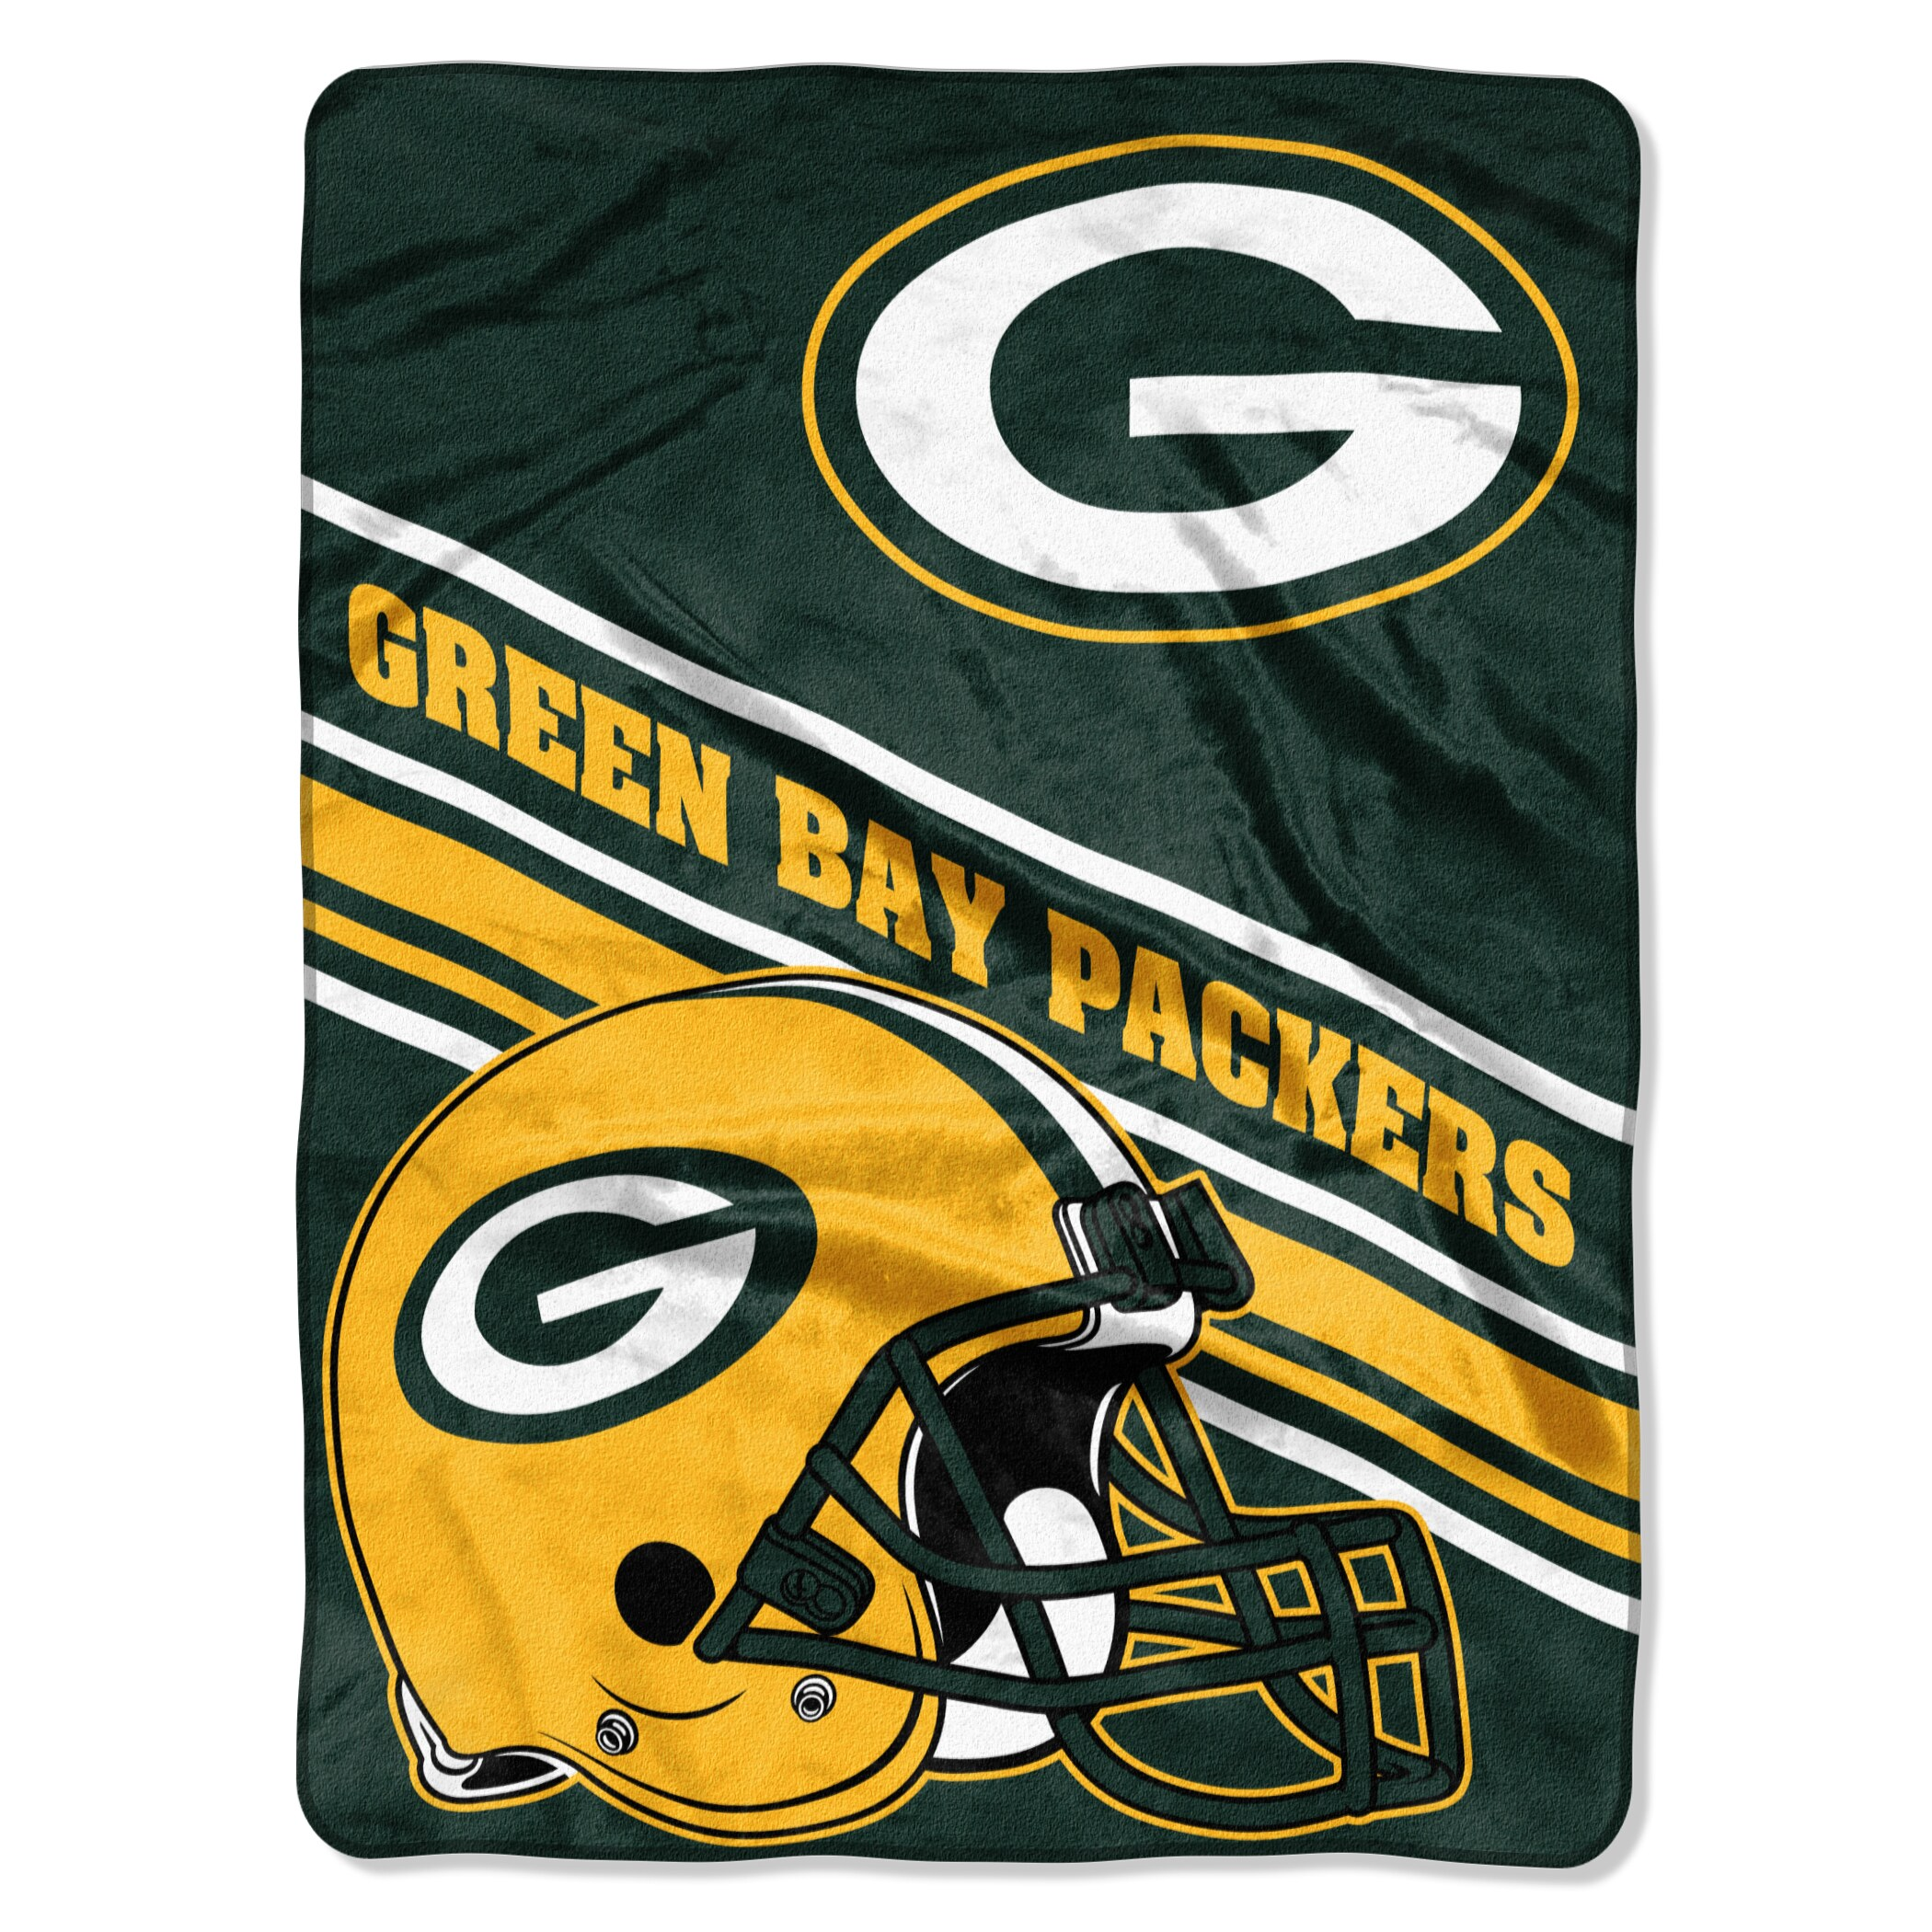 Green Bay Packers The Northwest Company 60'' x 80'' Slant Rashcel Throw